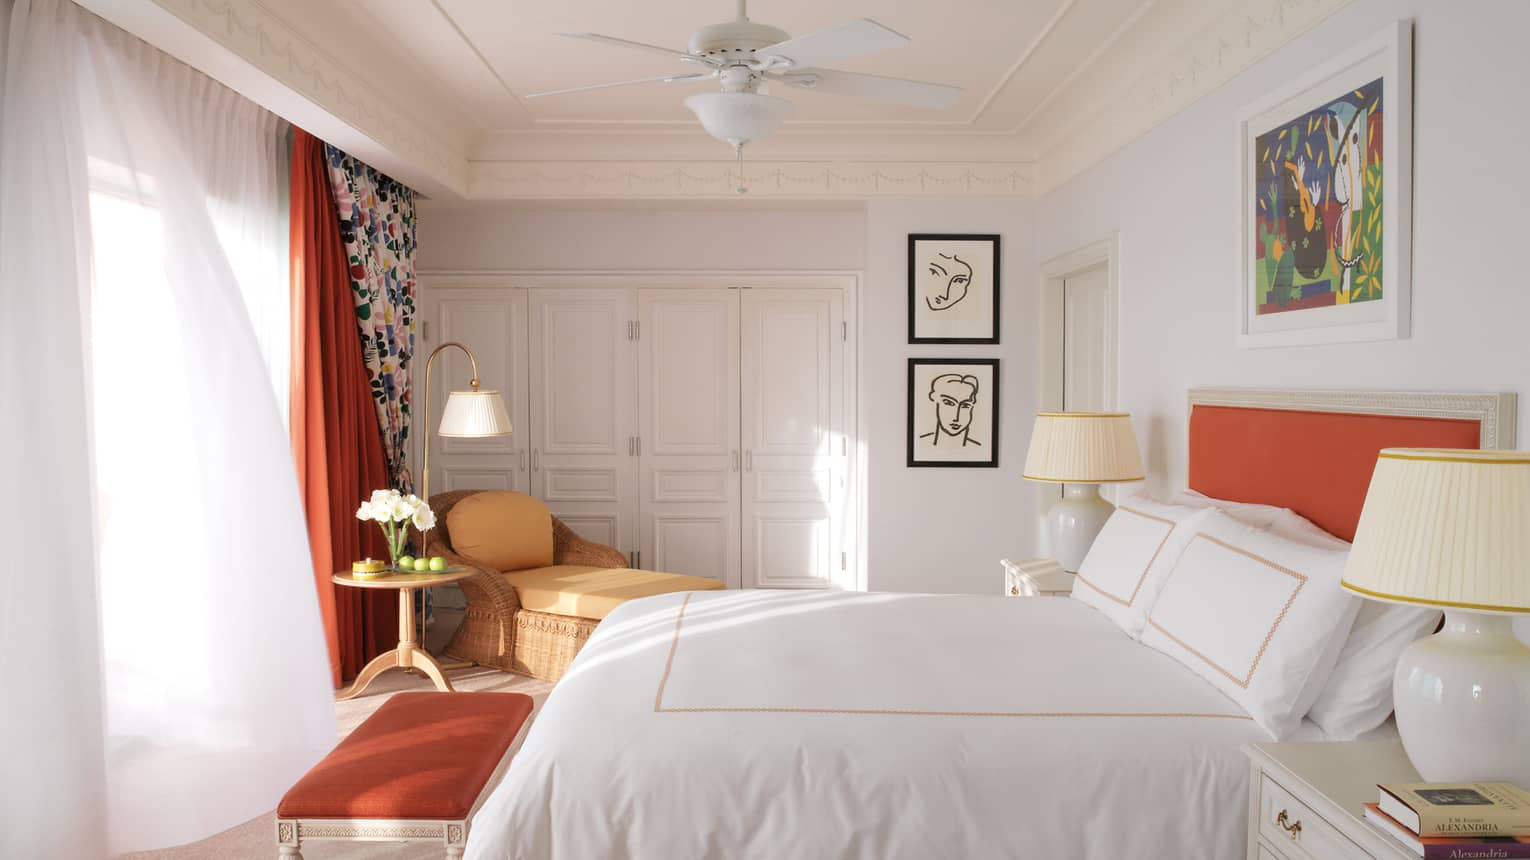 Bright Pool Terrace Room with white walls, bed linens, curtains, orange accent colours